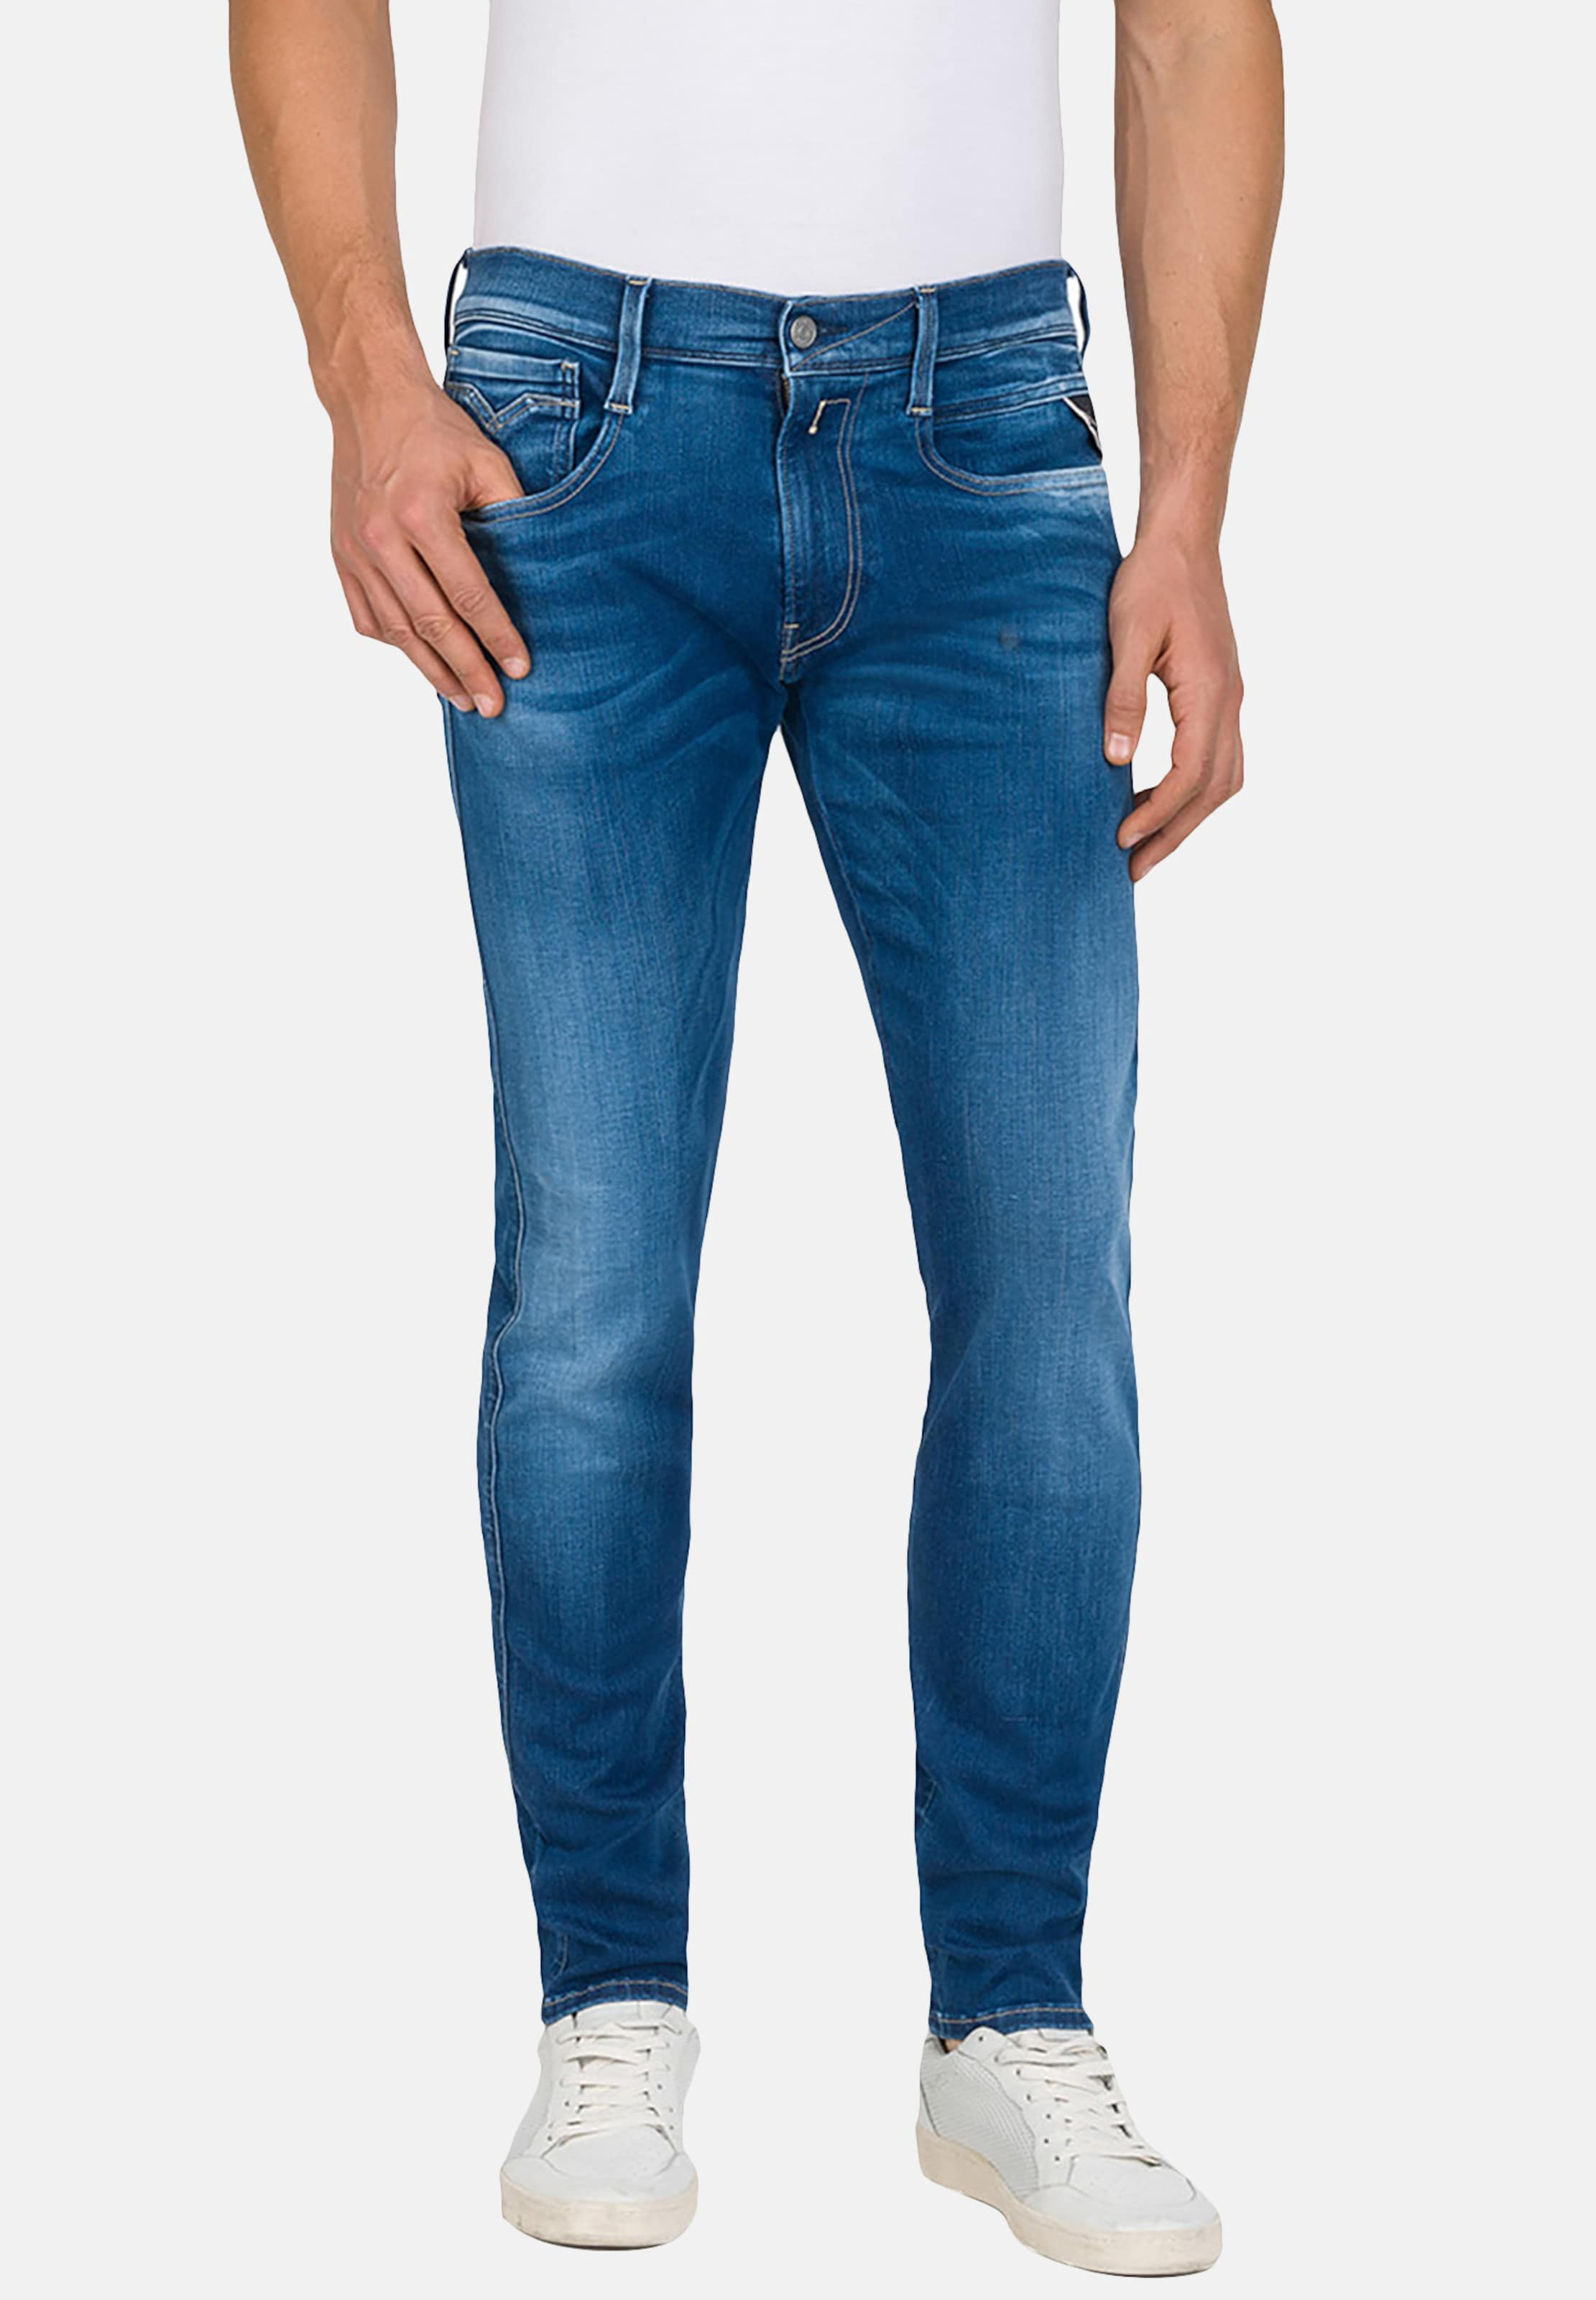 Jeans Replay 'anbass' Replay In Blau Replay Jeans Blau 'anbass' In EHD9I2